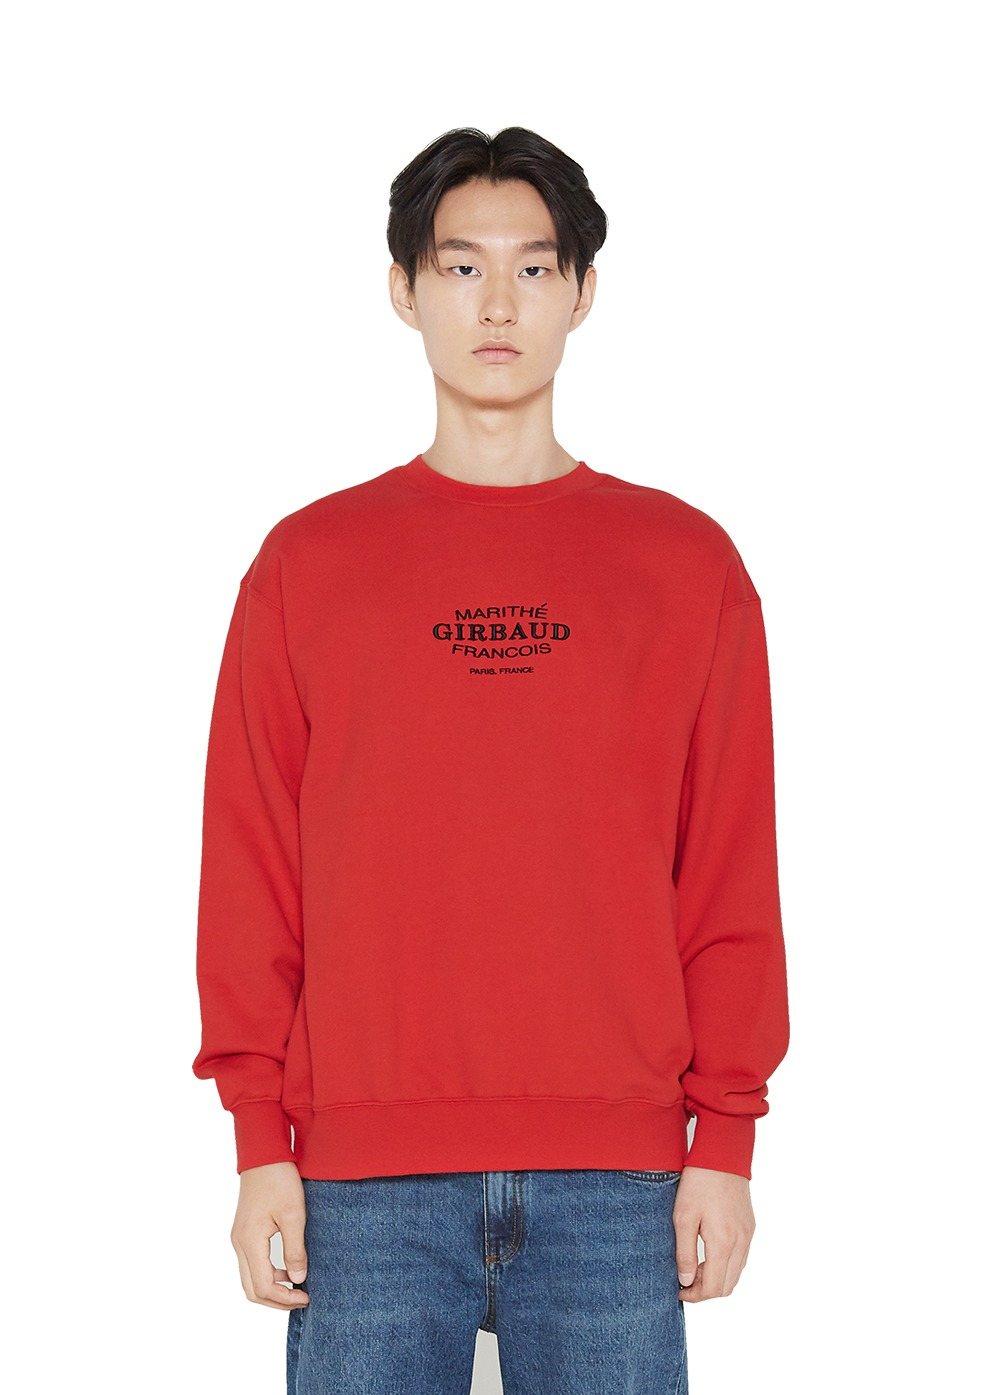 MFG OVAL LOGO SWEATSHIRT red